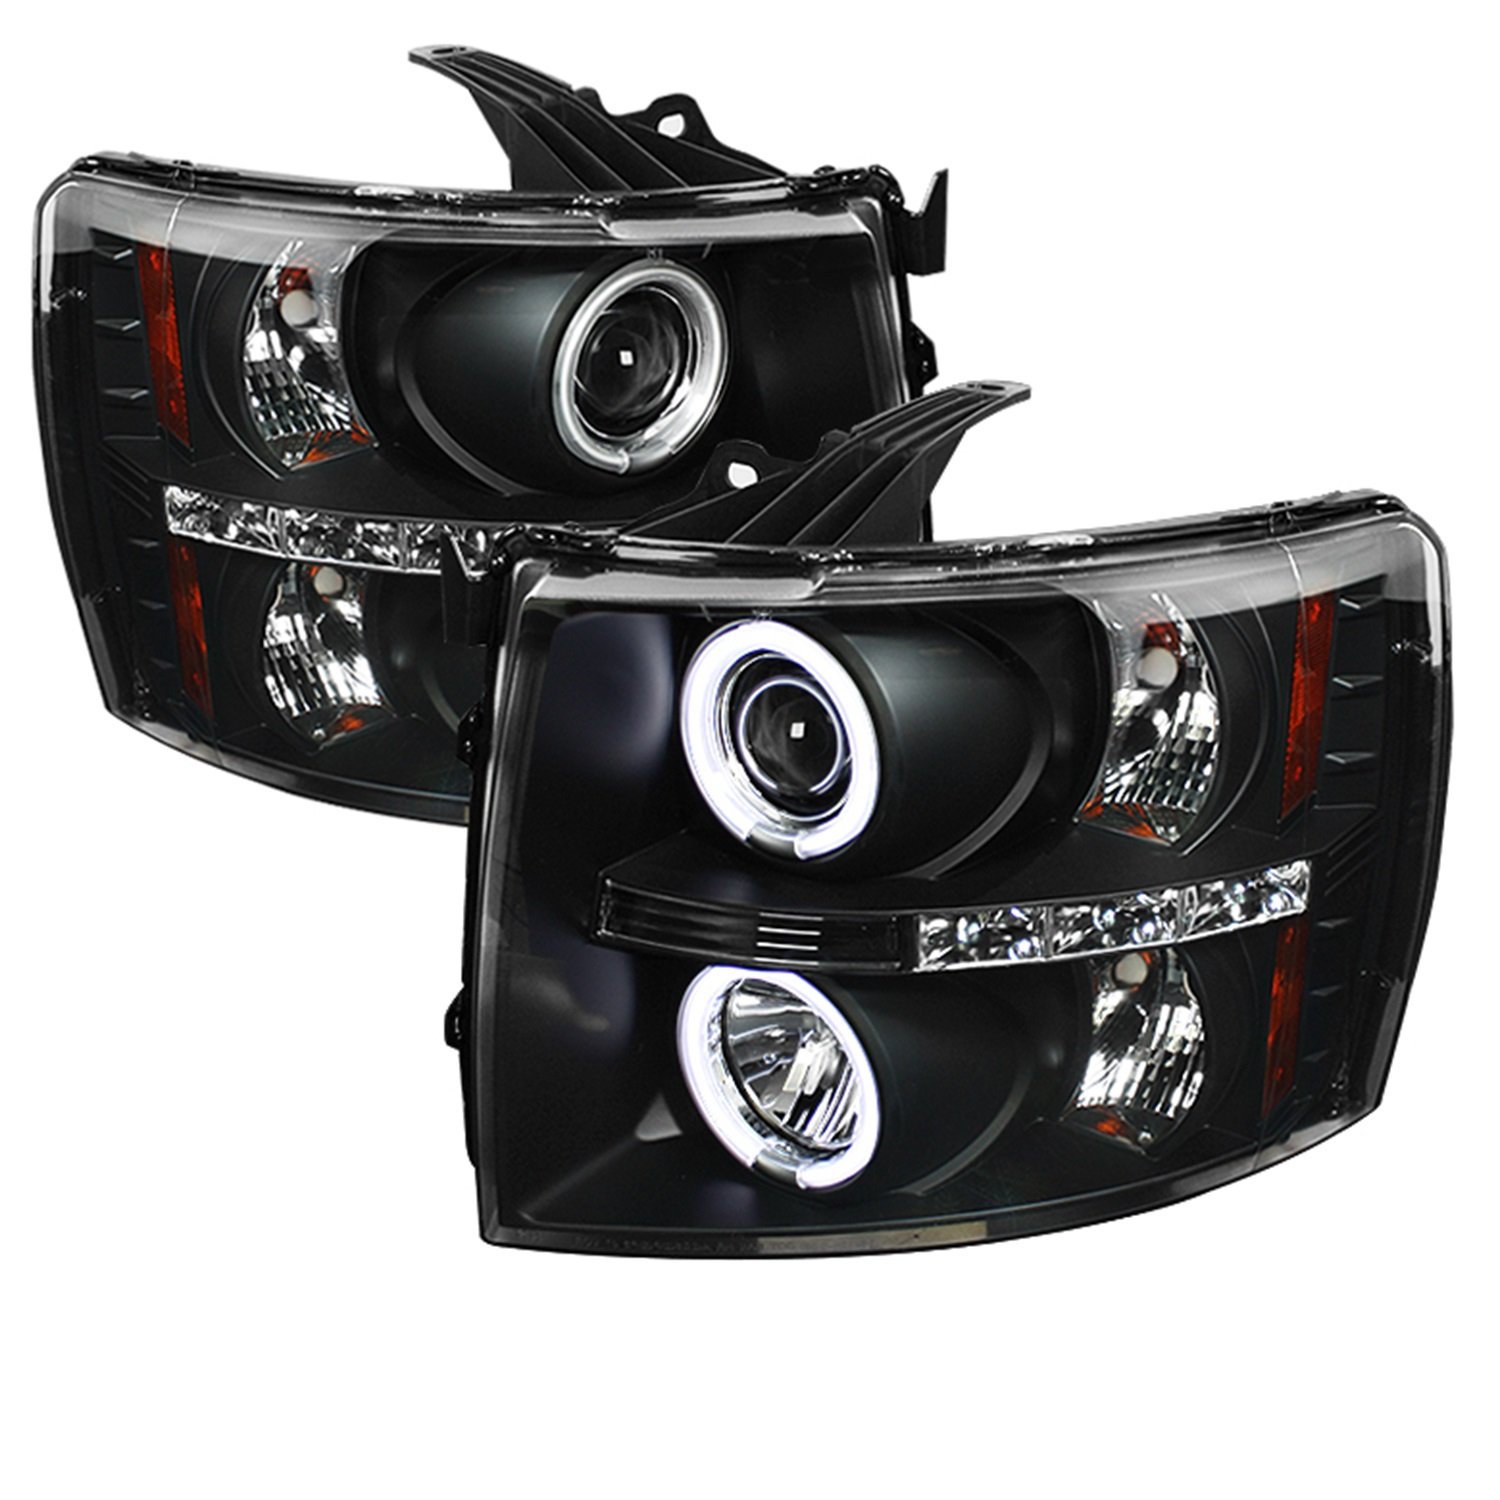 Spyder Auto 5033864 CCFL LED Projector Headlights